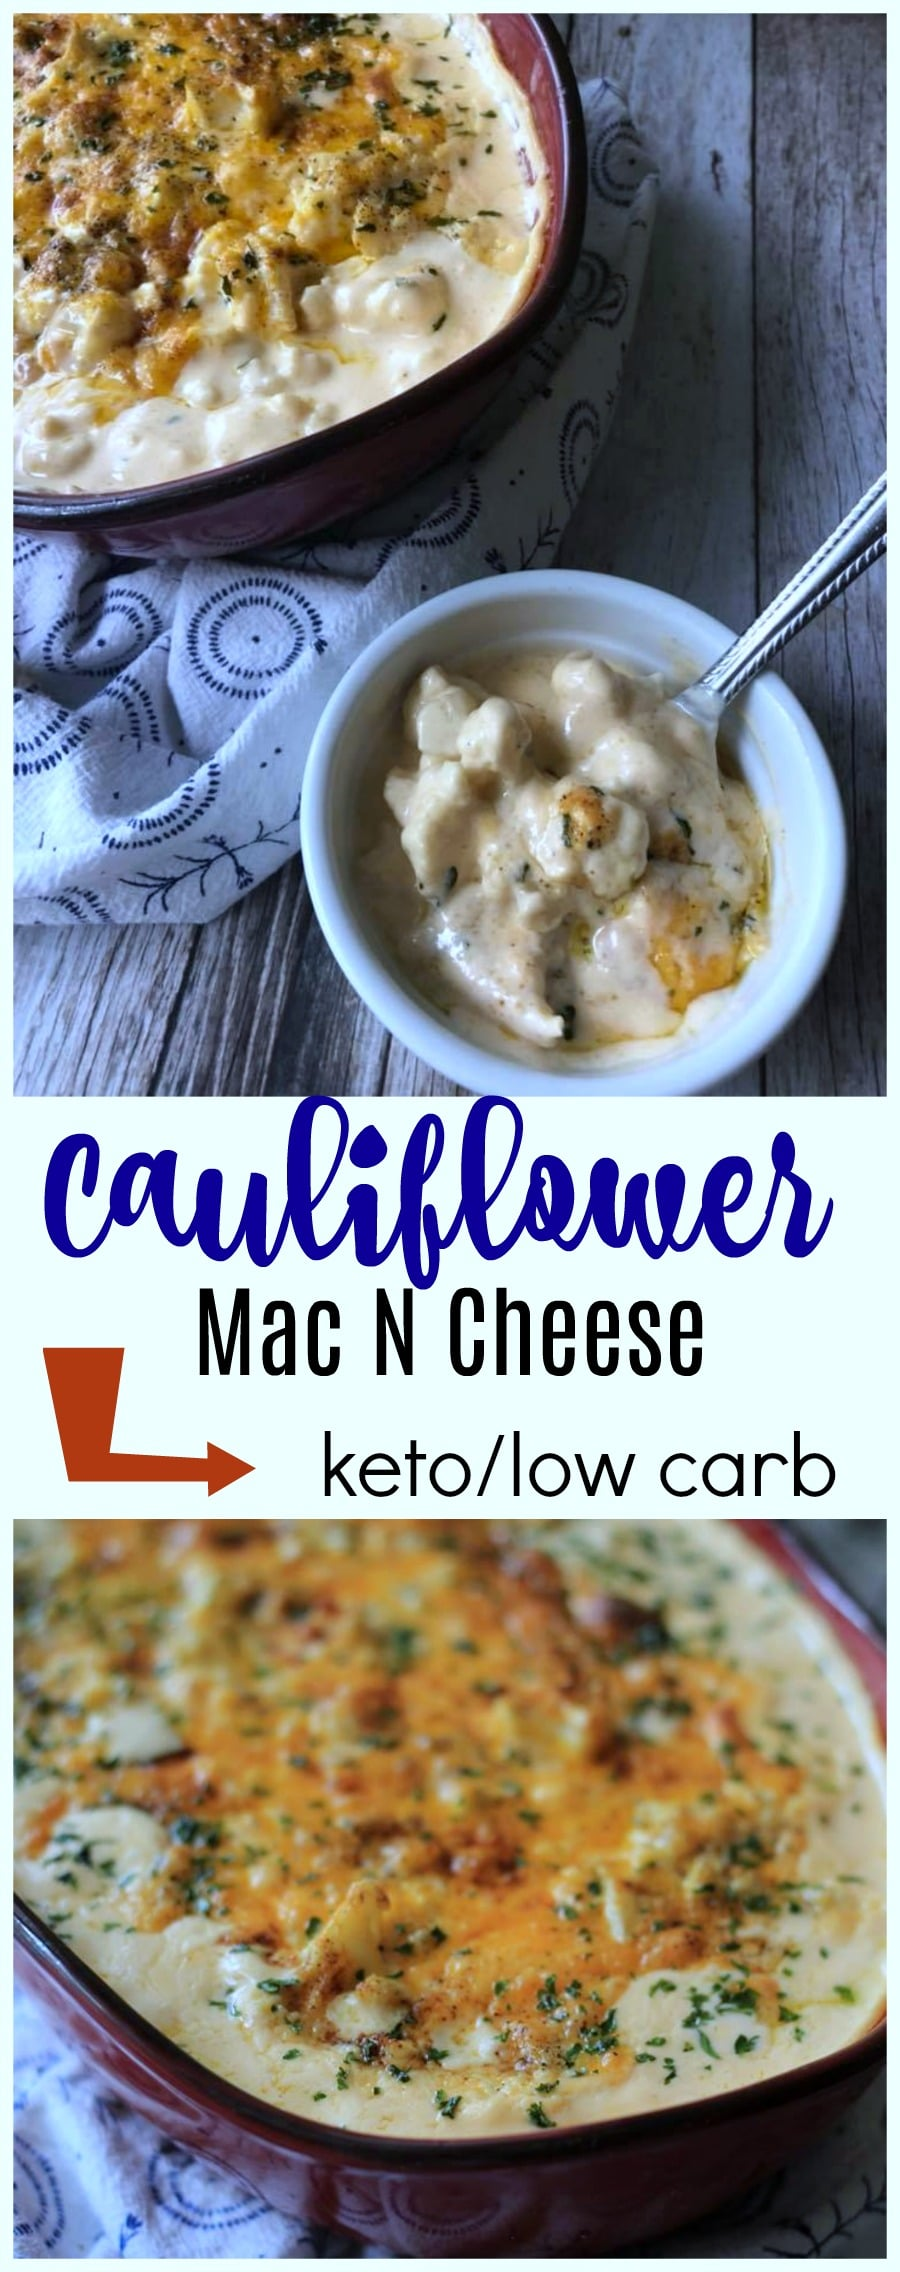 This Keto Cauliflower Mac and Cheese Recipe is going to revitalize your meal plan. Your menu plan will be perfect with this delicious creamy side dish!